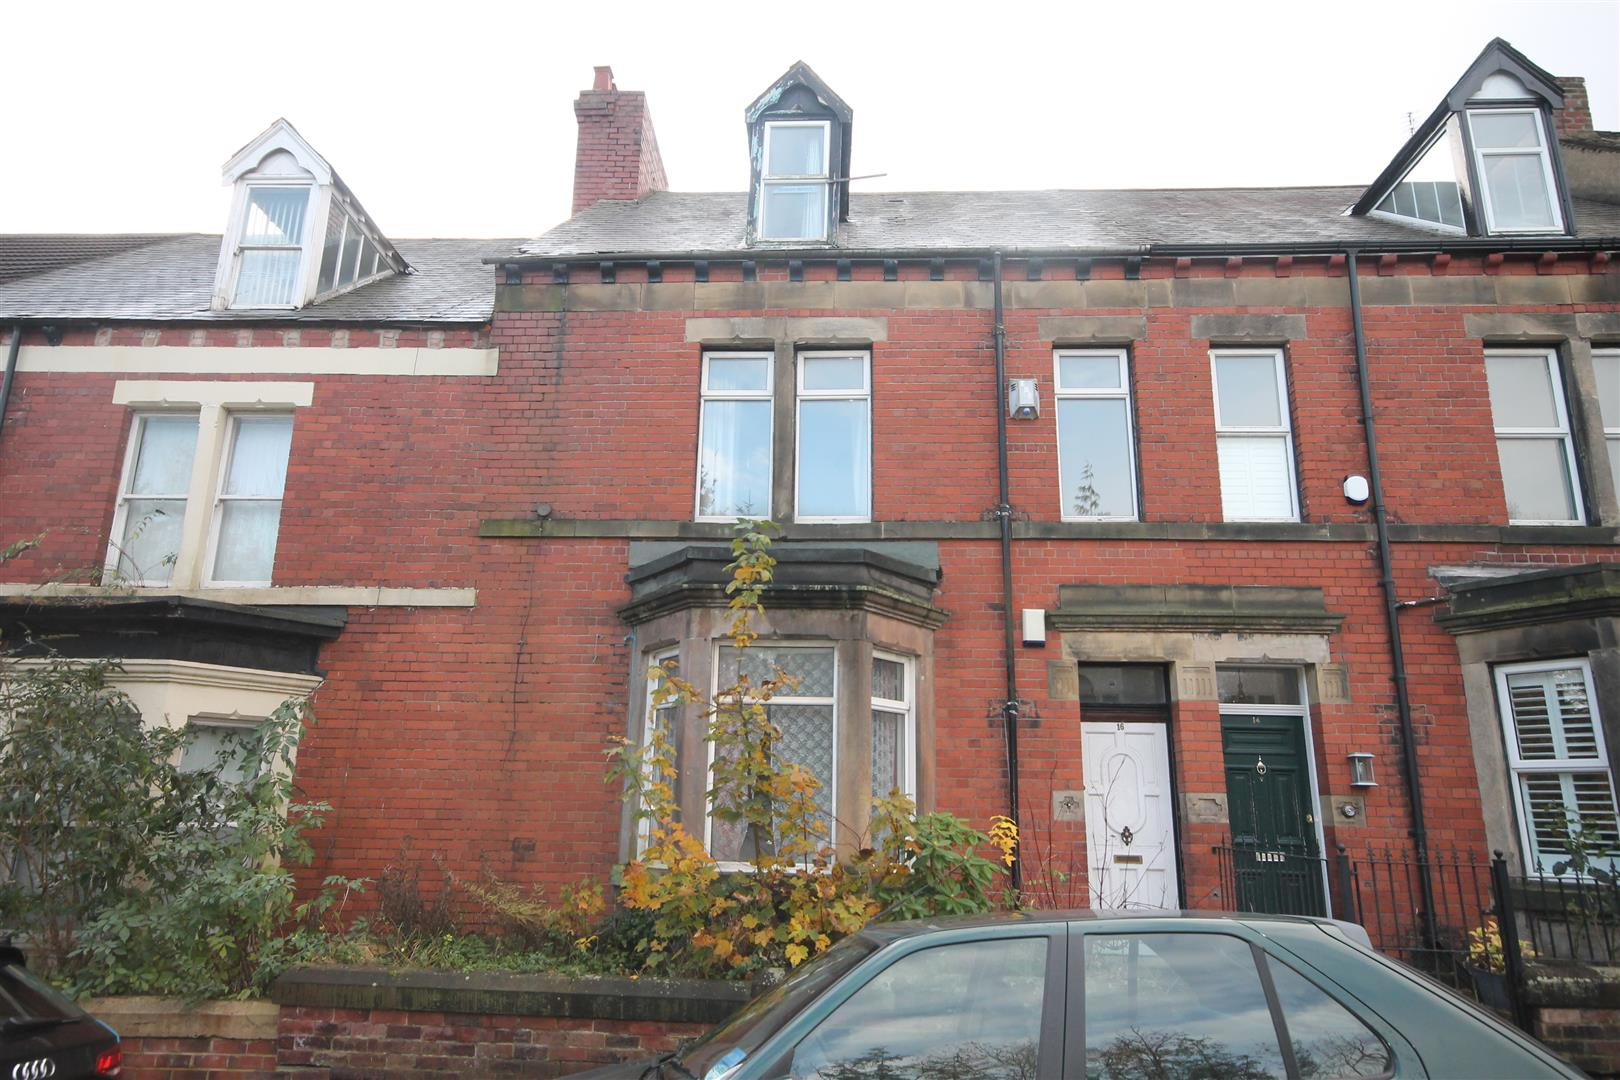 Churchill Gardens Newcastle Upon Tyne, 4 Bedrooms  House - mid terrace ,Sold (STC)